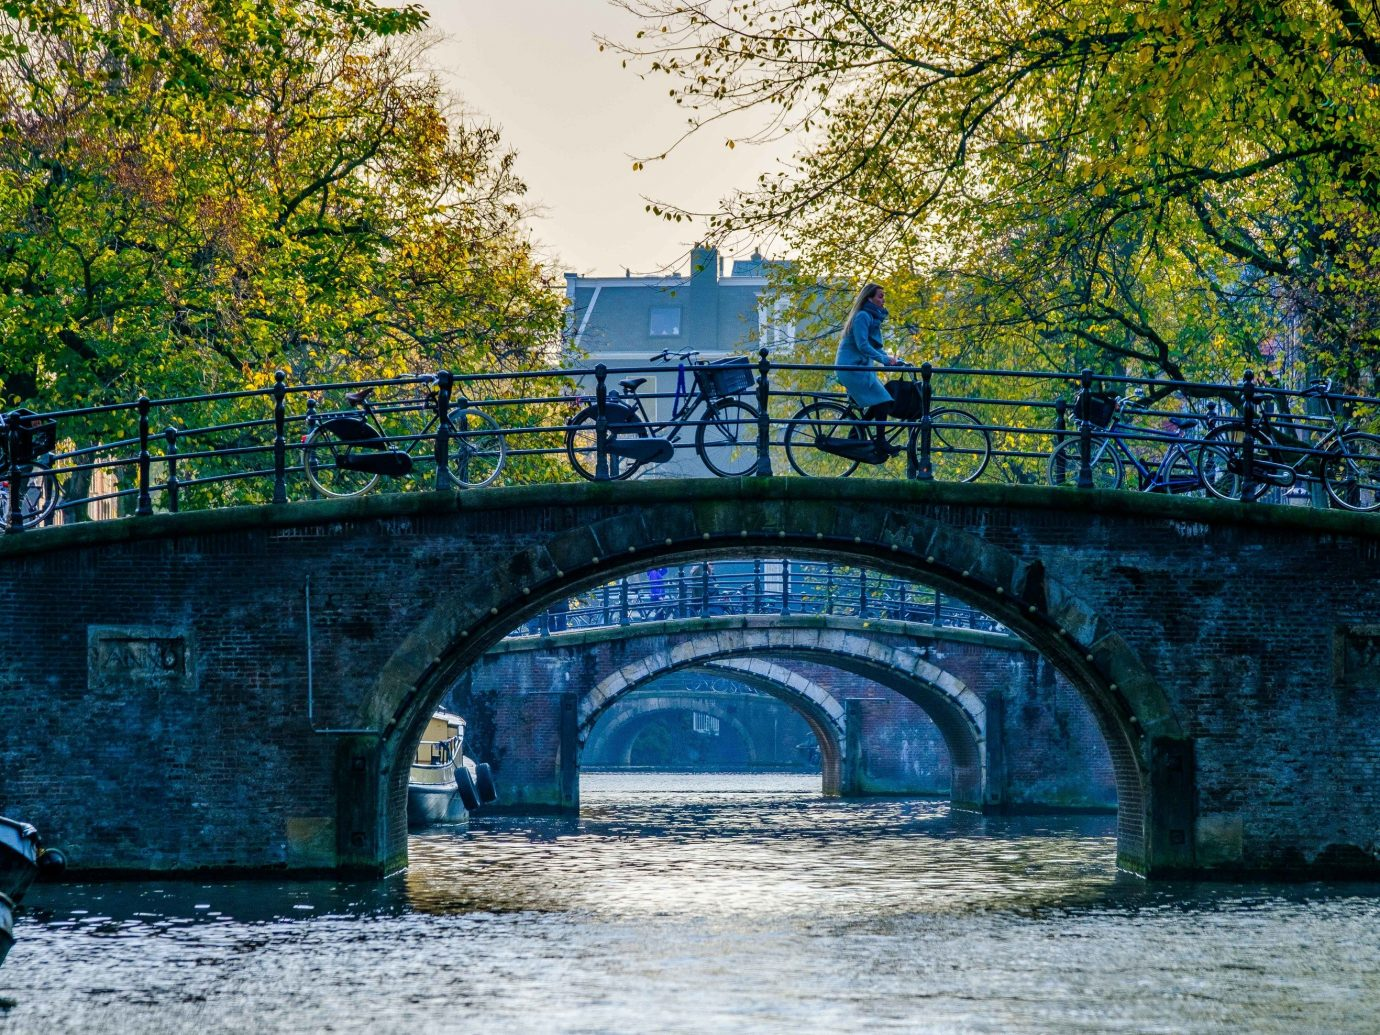 Cruise Travel Luxury Travel tree outdoor water bridge waterway Nature body of water Canal reflection River leaf plant watercourse bank sky arch bridge landscape City fixed link arch traveling stone